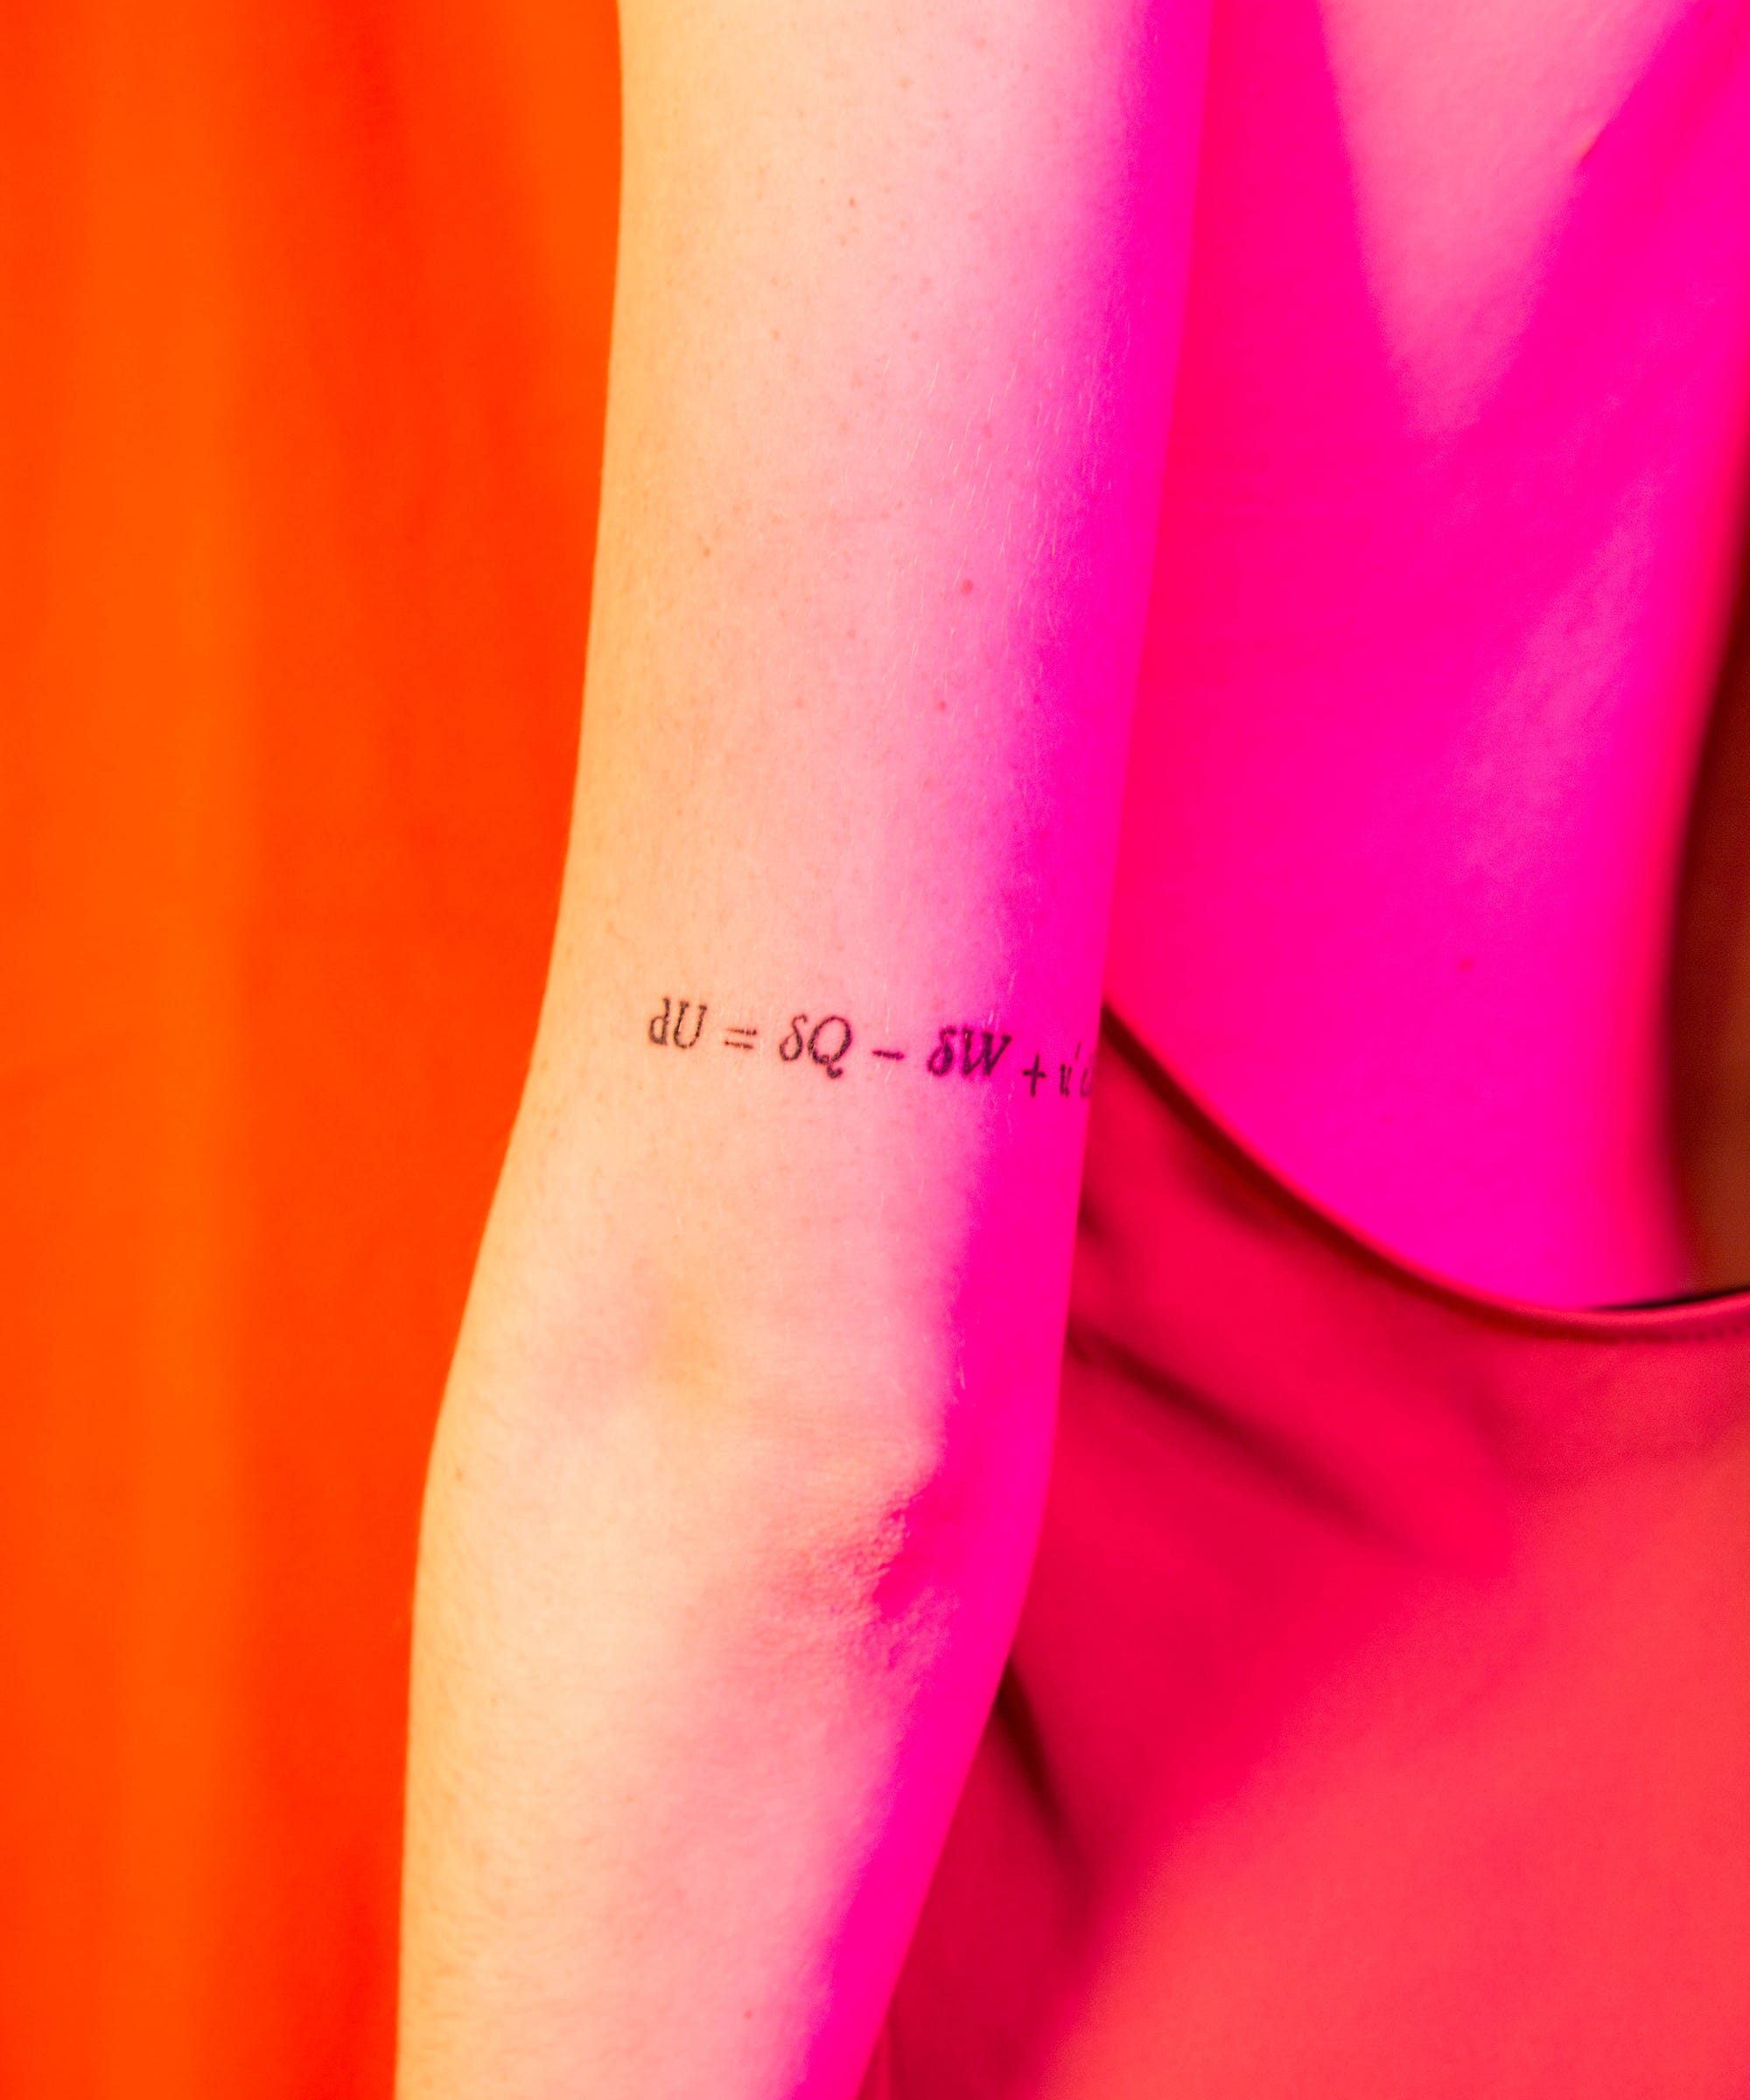 29482eea4 7 Tattoo Trends You're About To See Everywhere In 2019